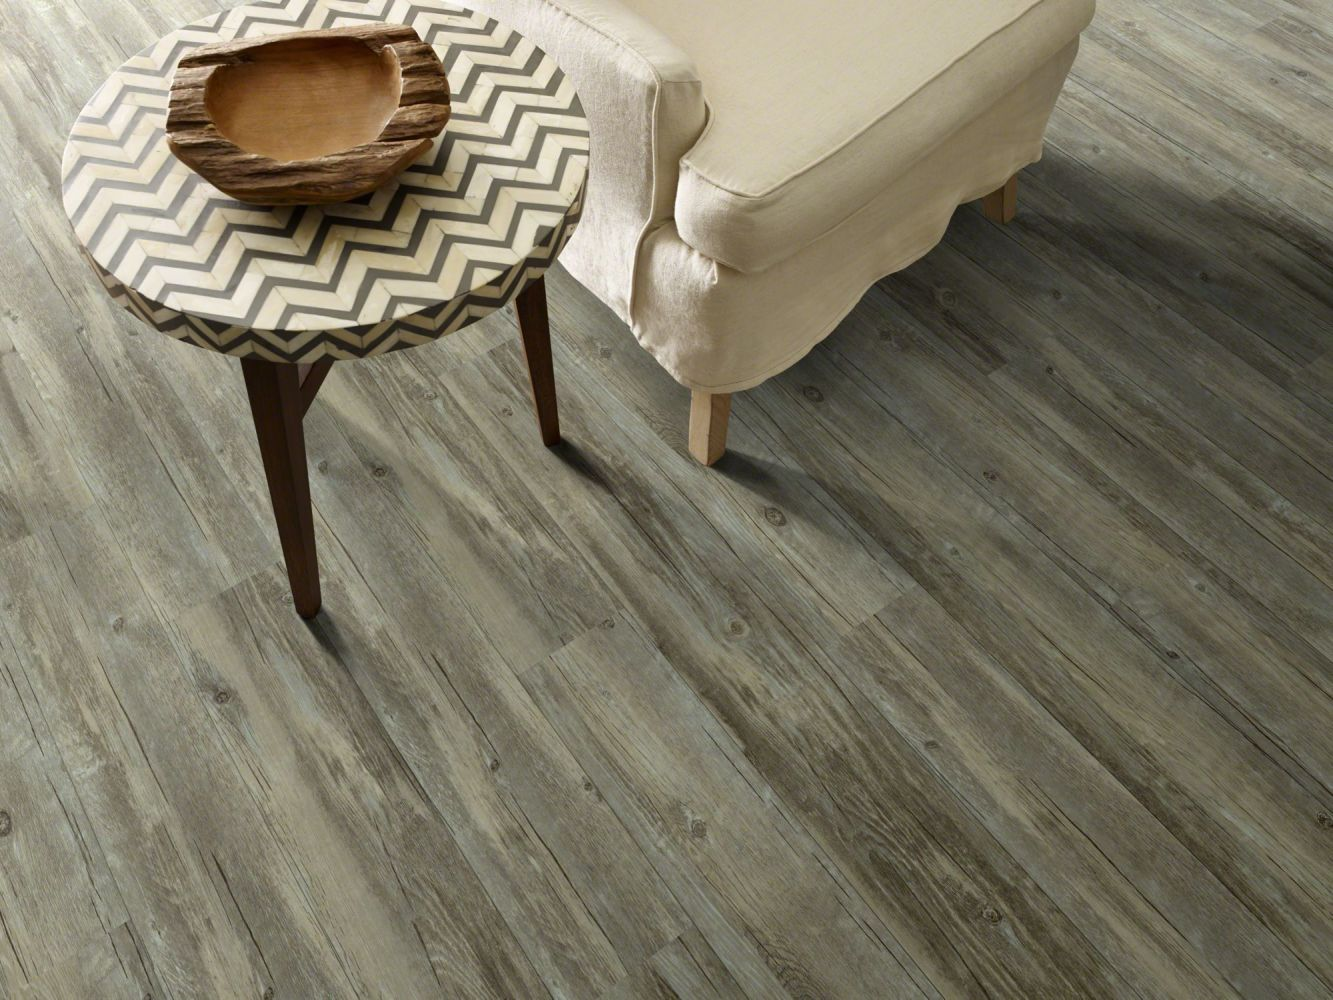 Shaw Floors Resilient Residential Valore Plus Plank Roma 00507_2545V